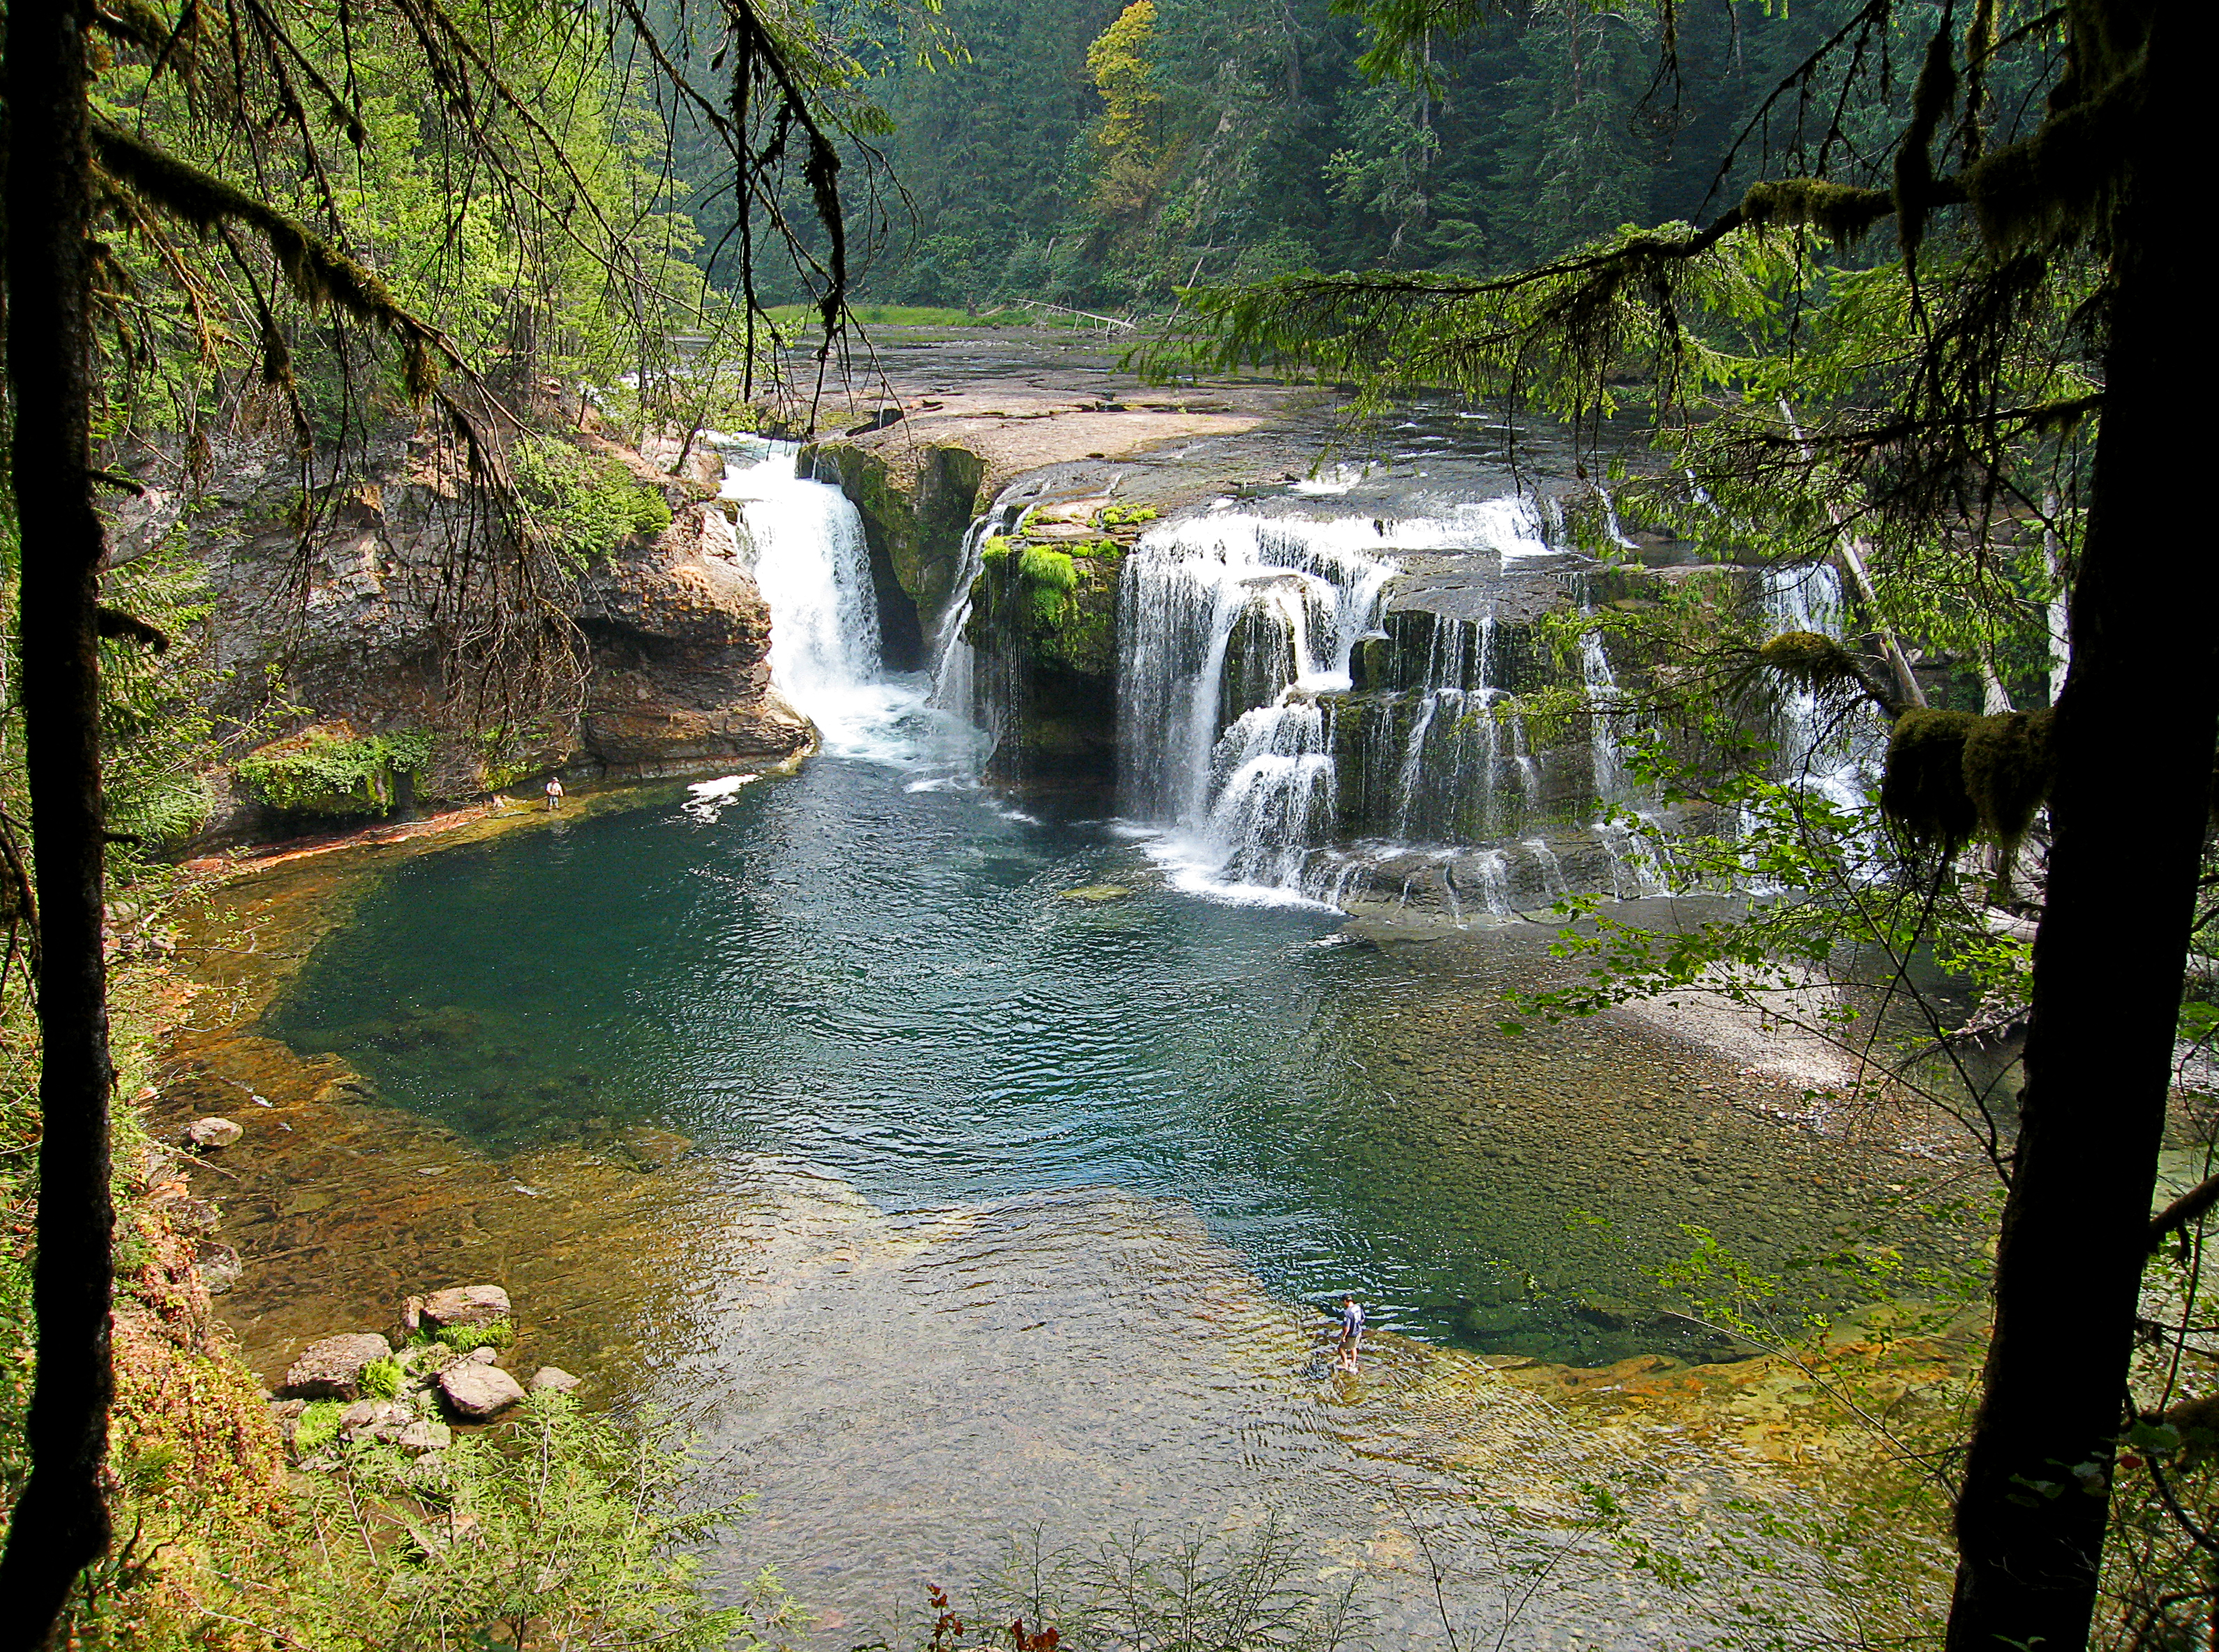 Lower Lewis River Falls Waterfall In Washington